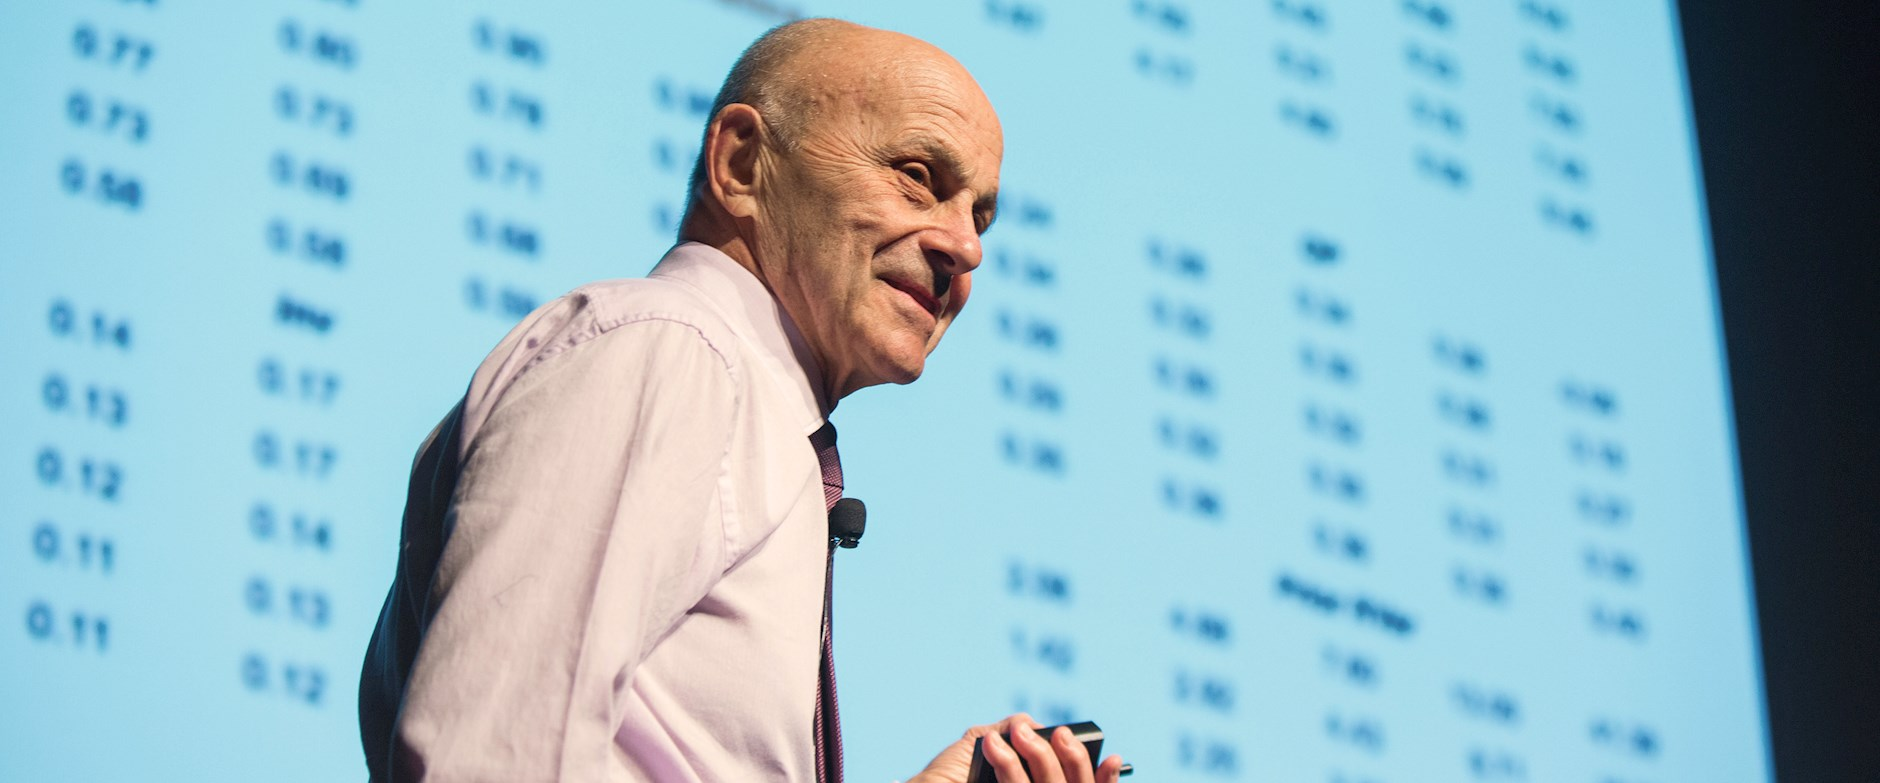 Eugene Fama presenting in front of a projector screen full on numbers